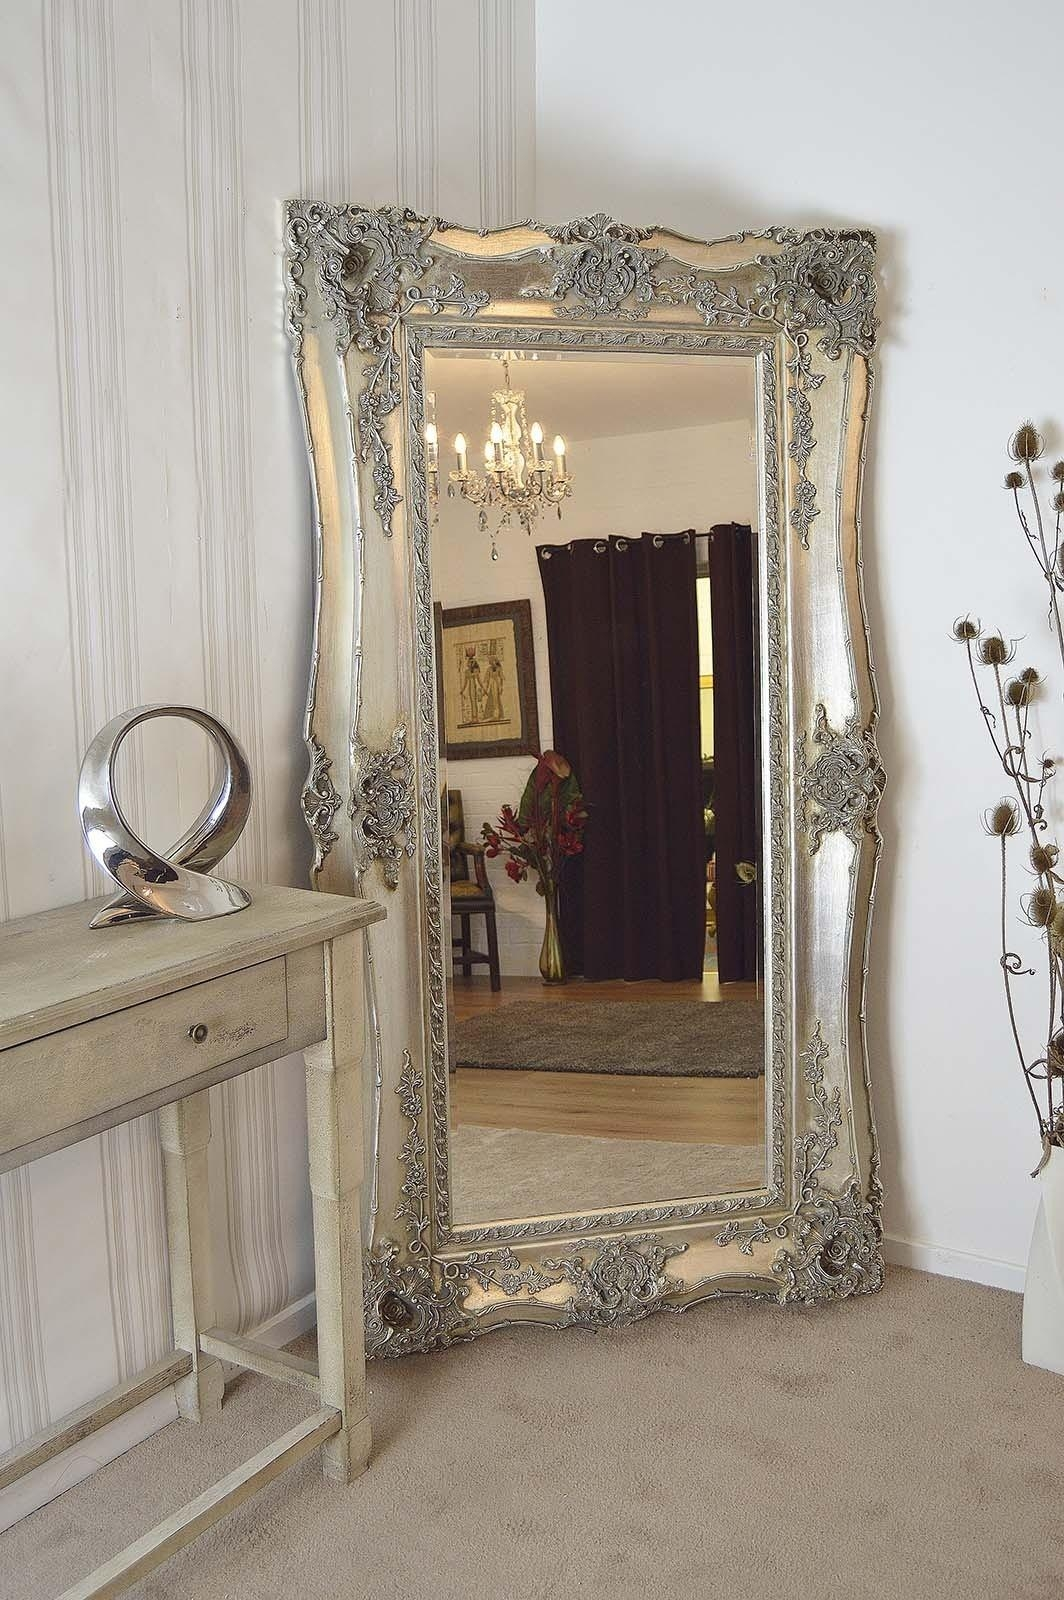 Homeware: Oval Full Length Standing Mirror | Large Floor Mirrors Throughout Antique Mirrors Cheap (Image 13 of 20)